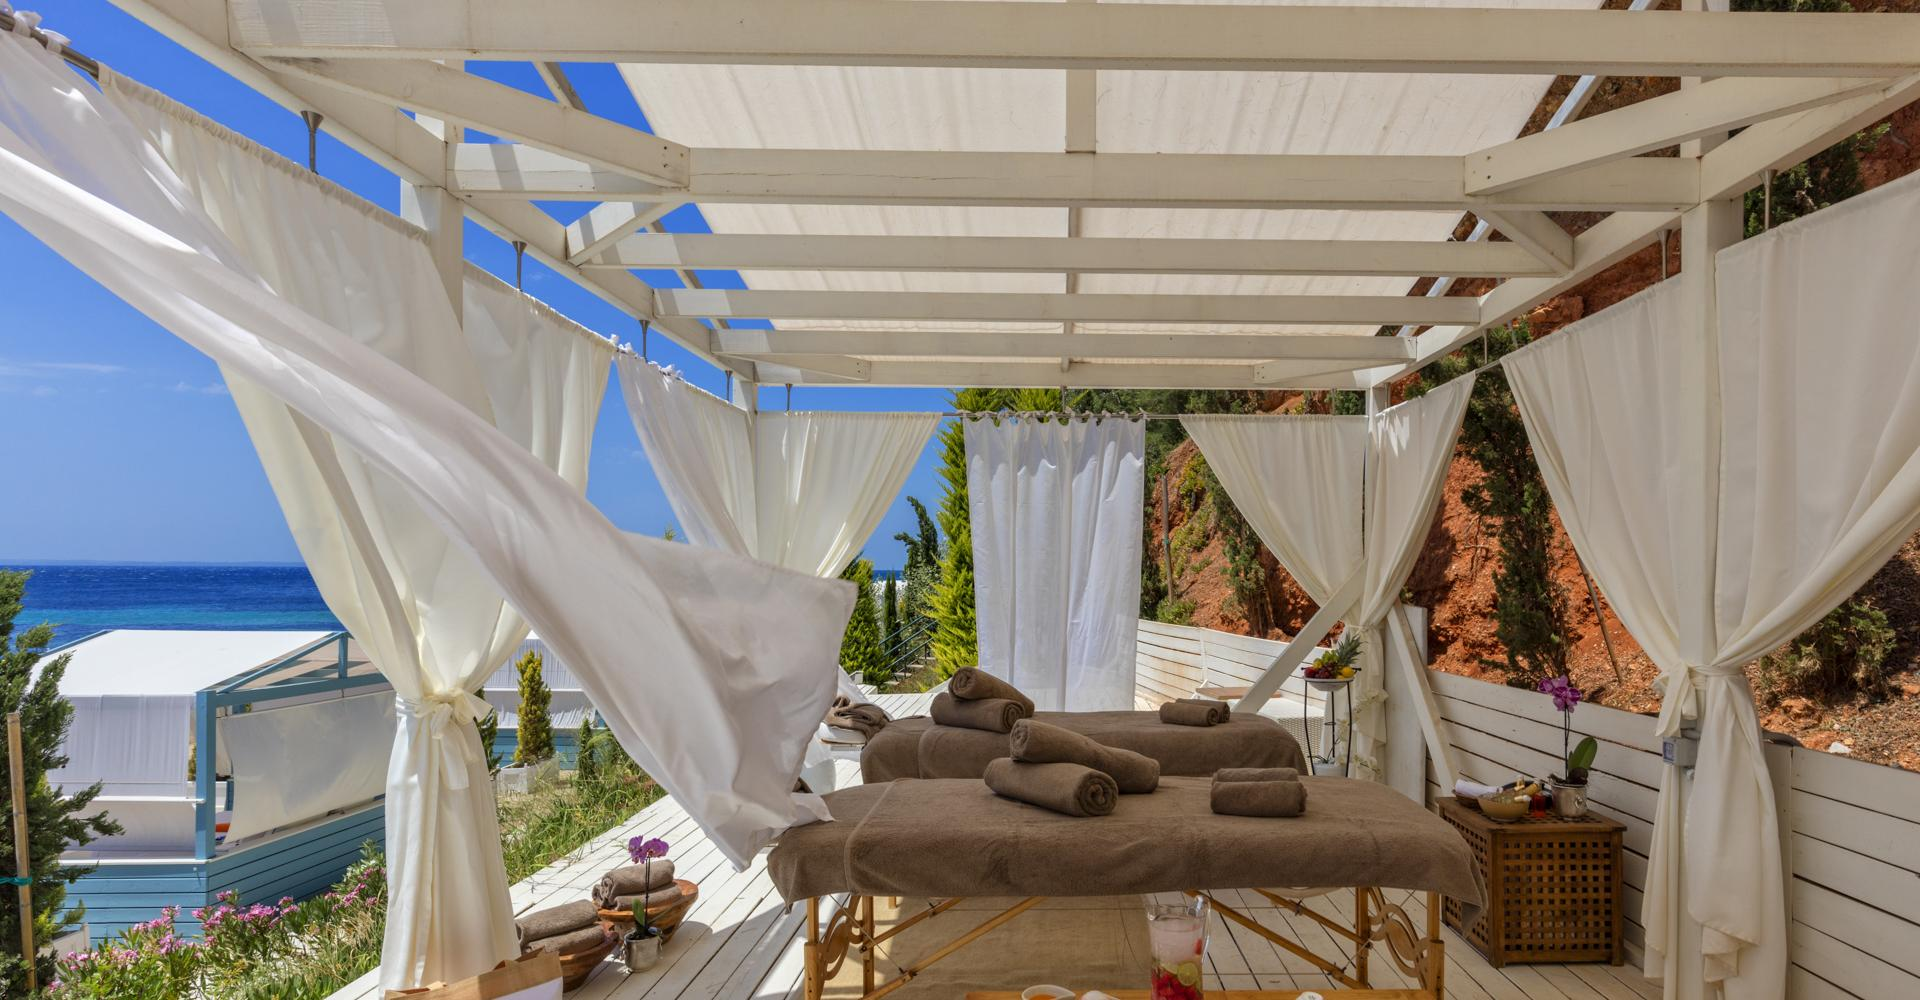 danai-beach-resort-spa-cabana